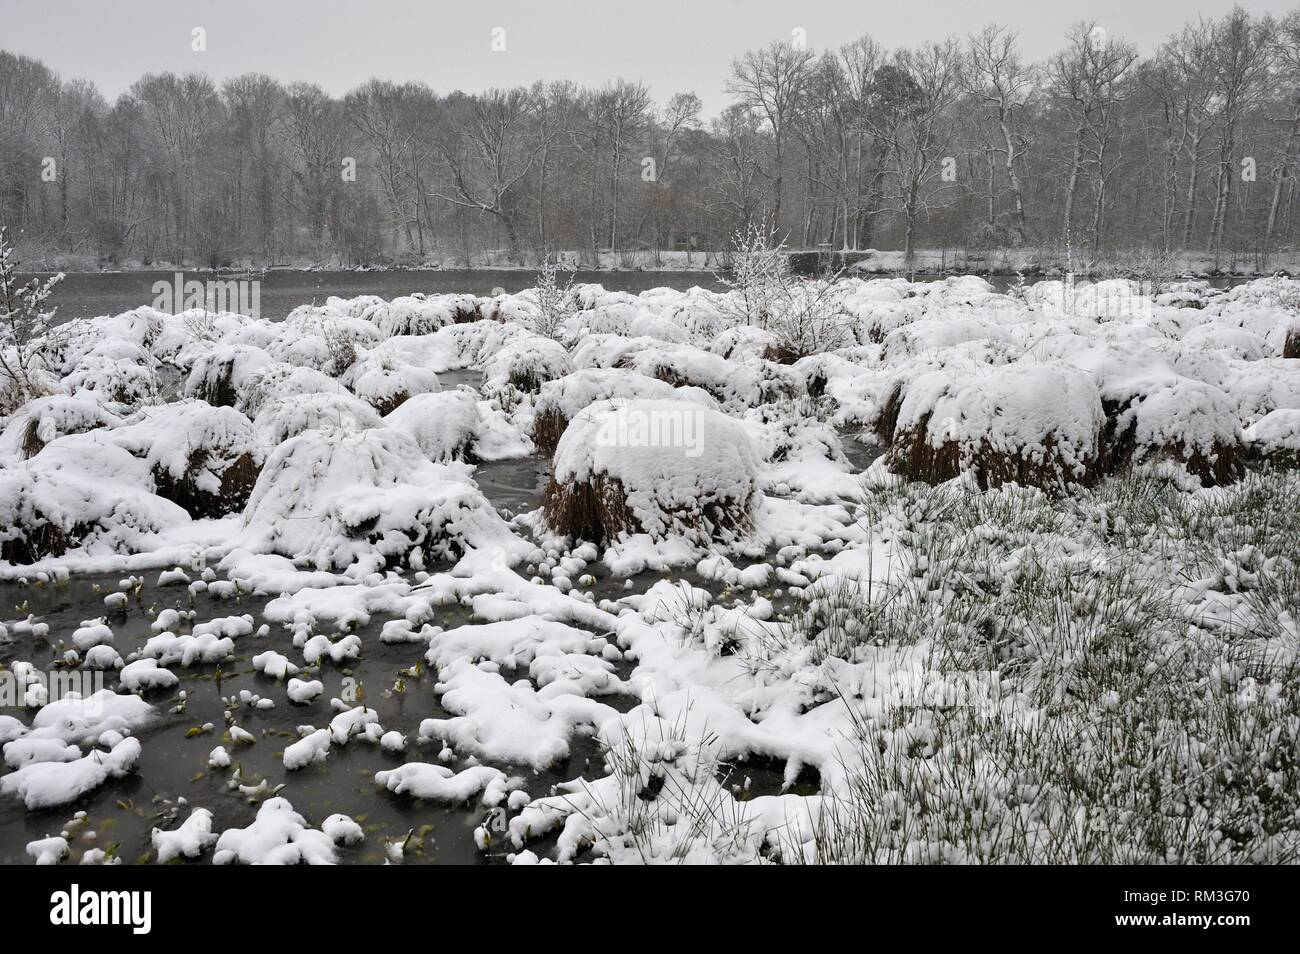 Greater tussok-sedge (Carex paniculata) in the pond of Guiperreux under the snow, Forest of Rambouillet, Haute Vallee de Chevreuse Regional Natural - Stock Image